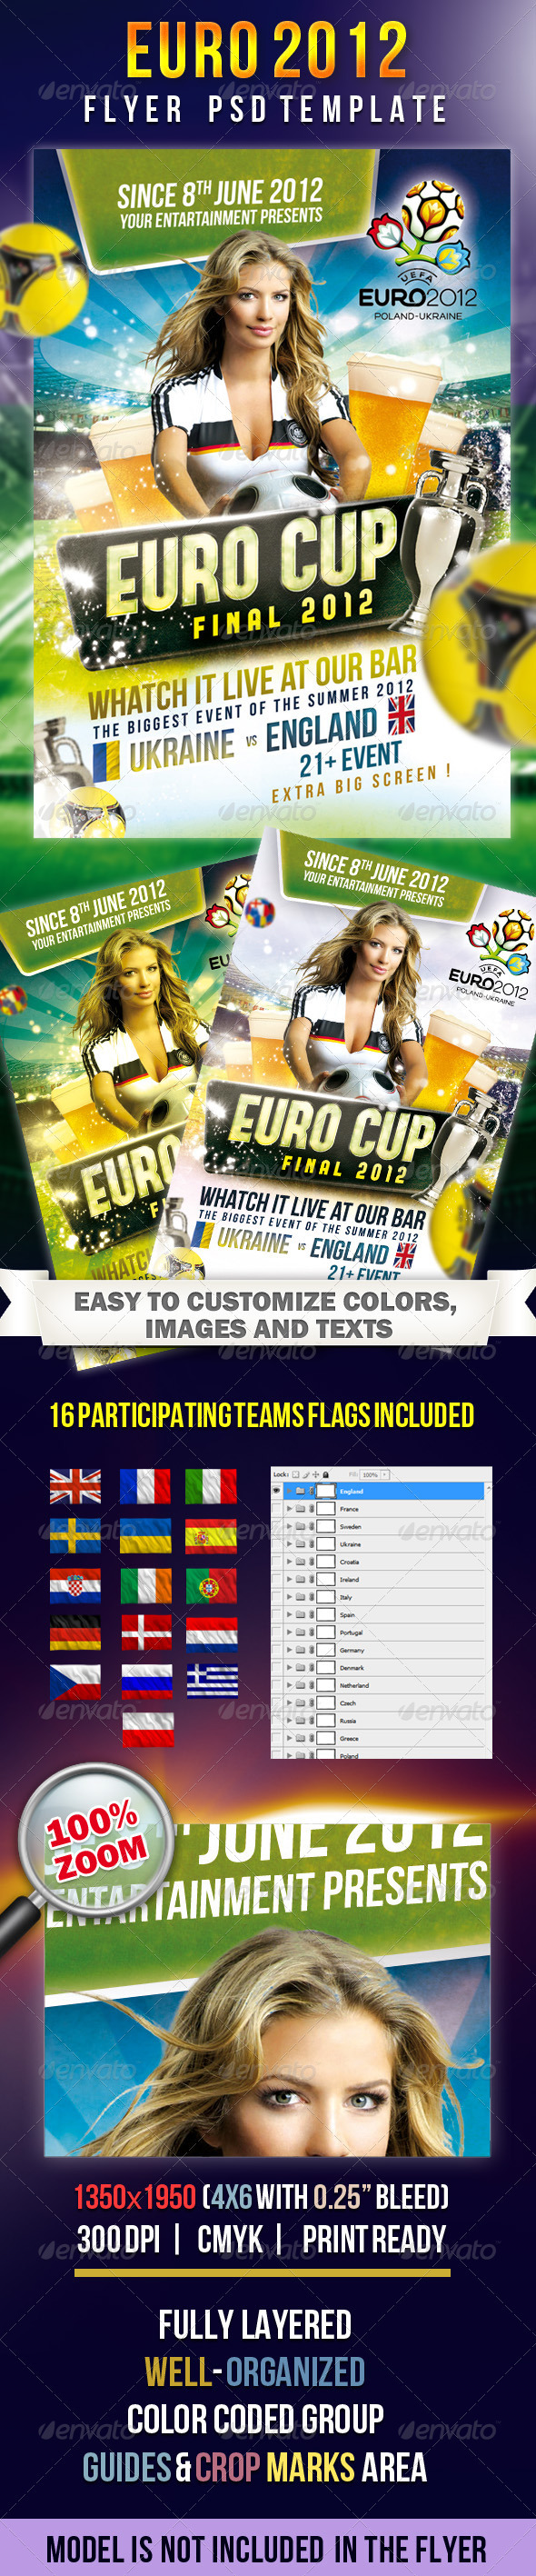 EURO CUP 2012 - Flyer PSD Template - Flyers Print Templates